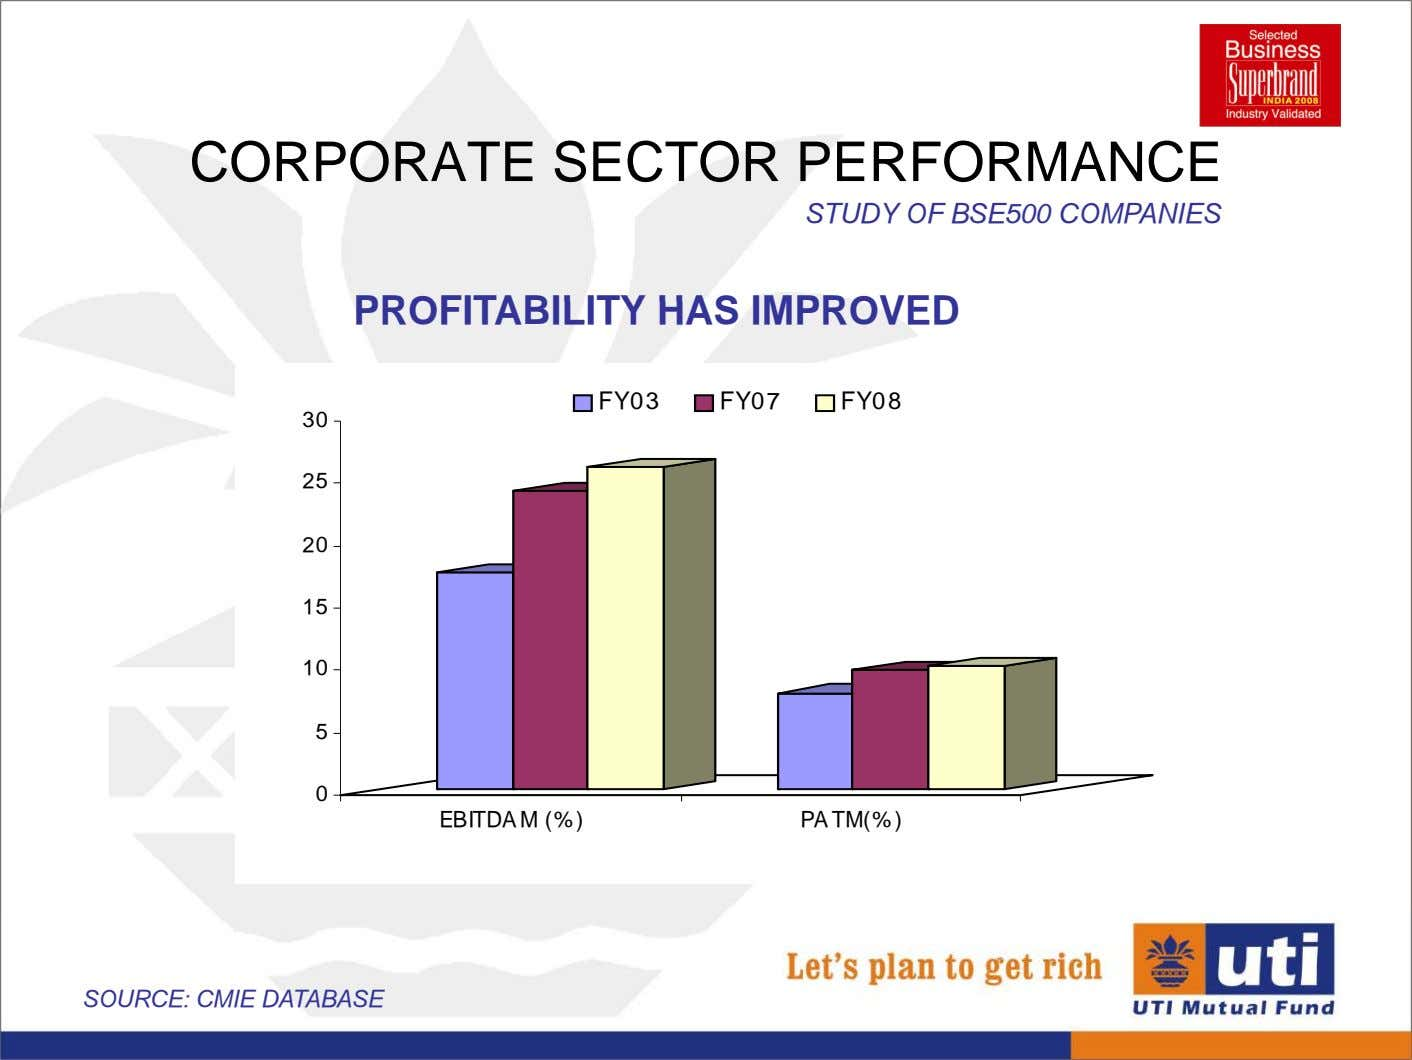 CORPORATE SECTOR PERFORMANCE STUDY OF BSE500 COMPANIES PROFITABILITY HAS IMPROVED FY03 FY07 FY08 30 25